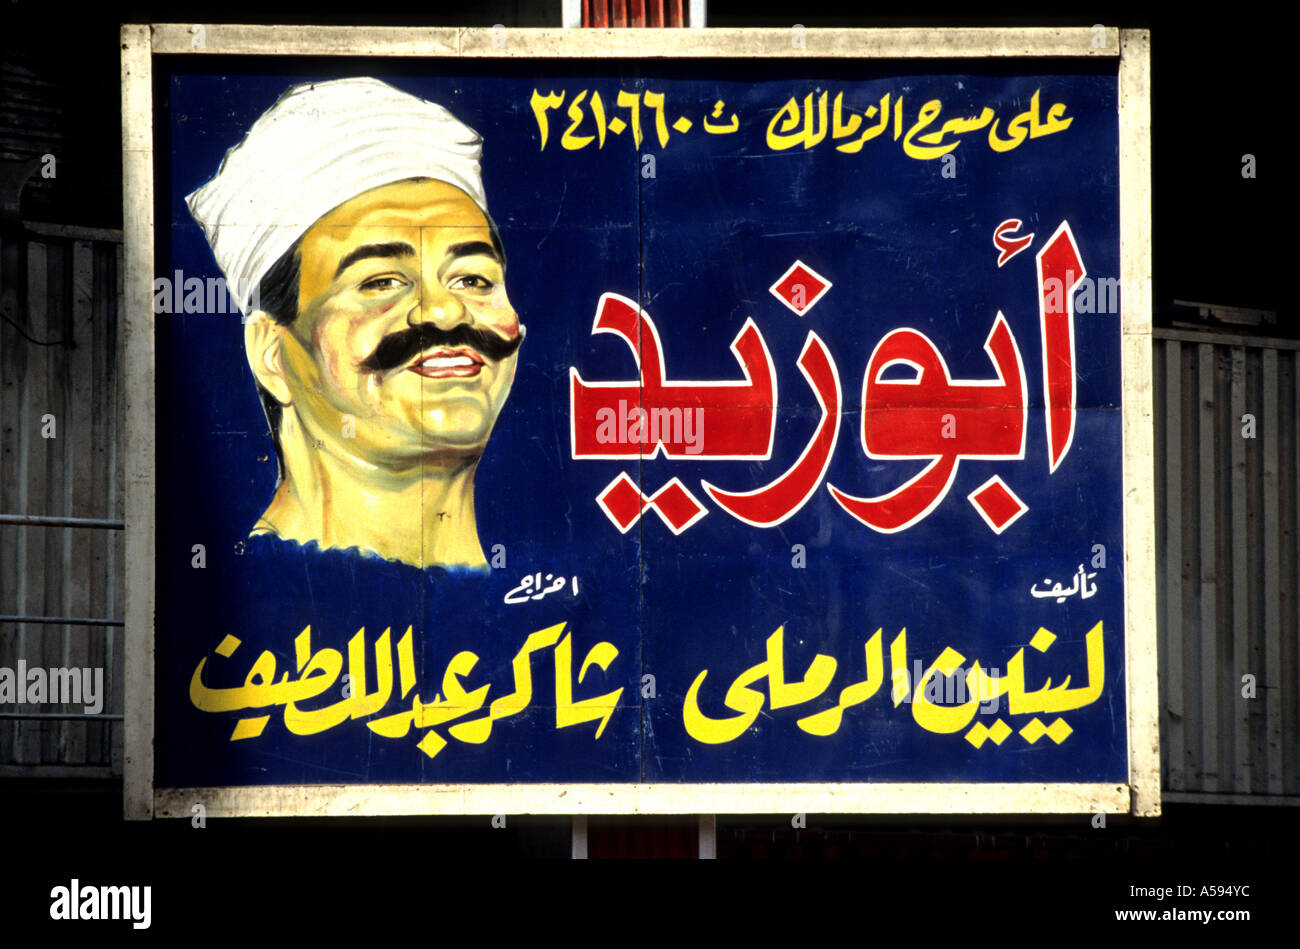 Face Man billboard parlor letters lettering Egypt - Stock Image